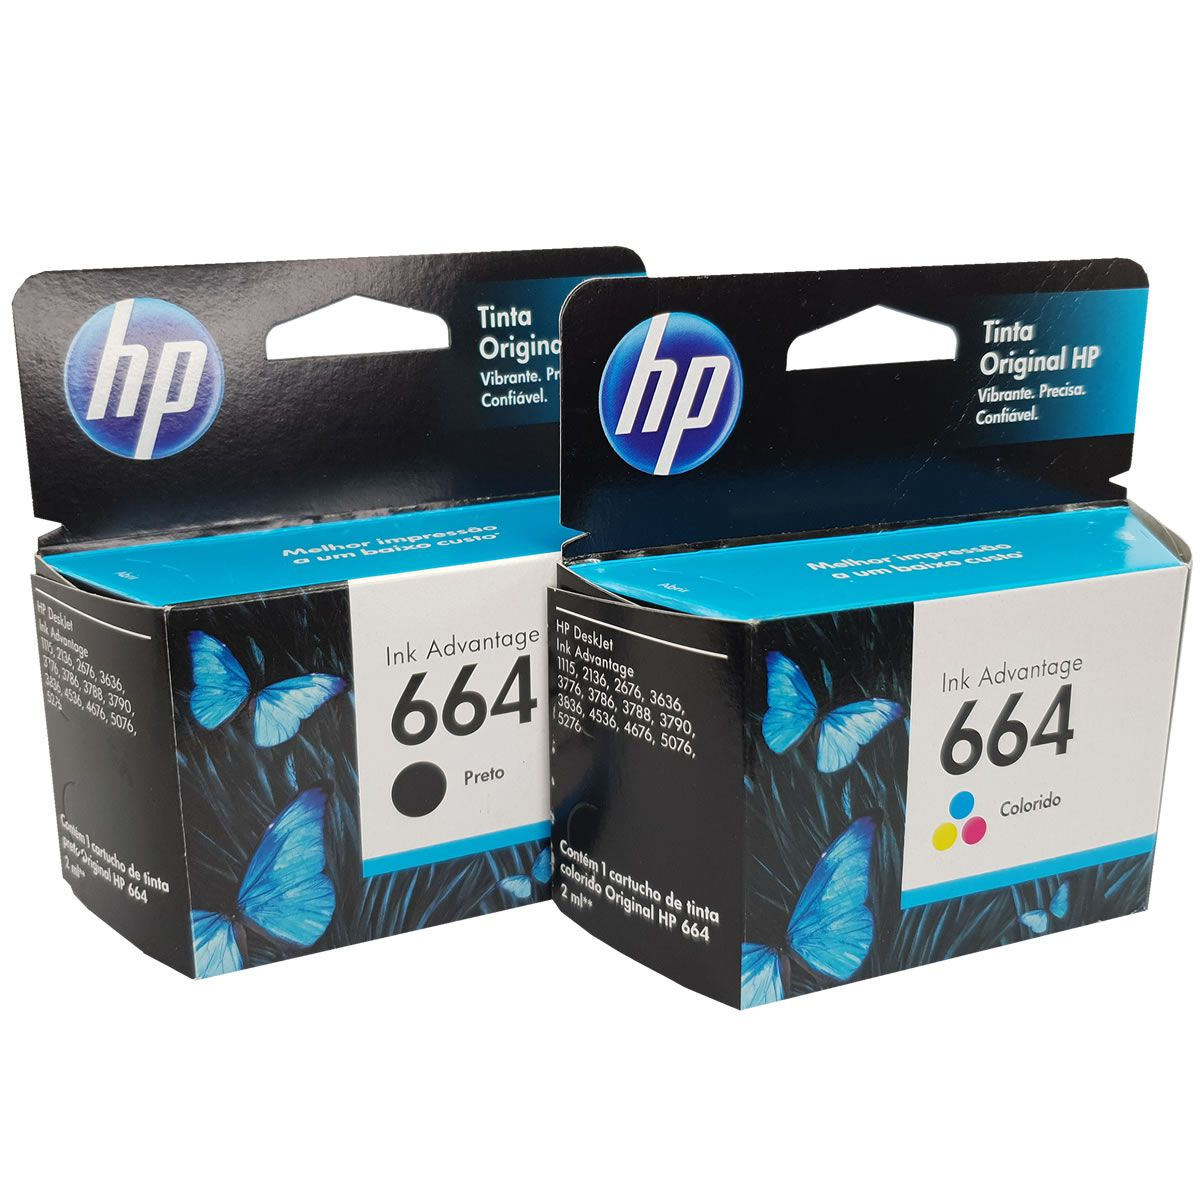 Kit Cartuchos Hp 664 1 Preto E 2 Coloridos Originais para 1115 2136 3636 3836 4536 4676